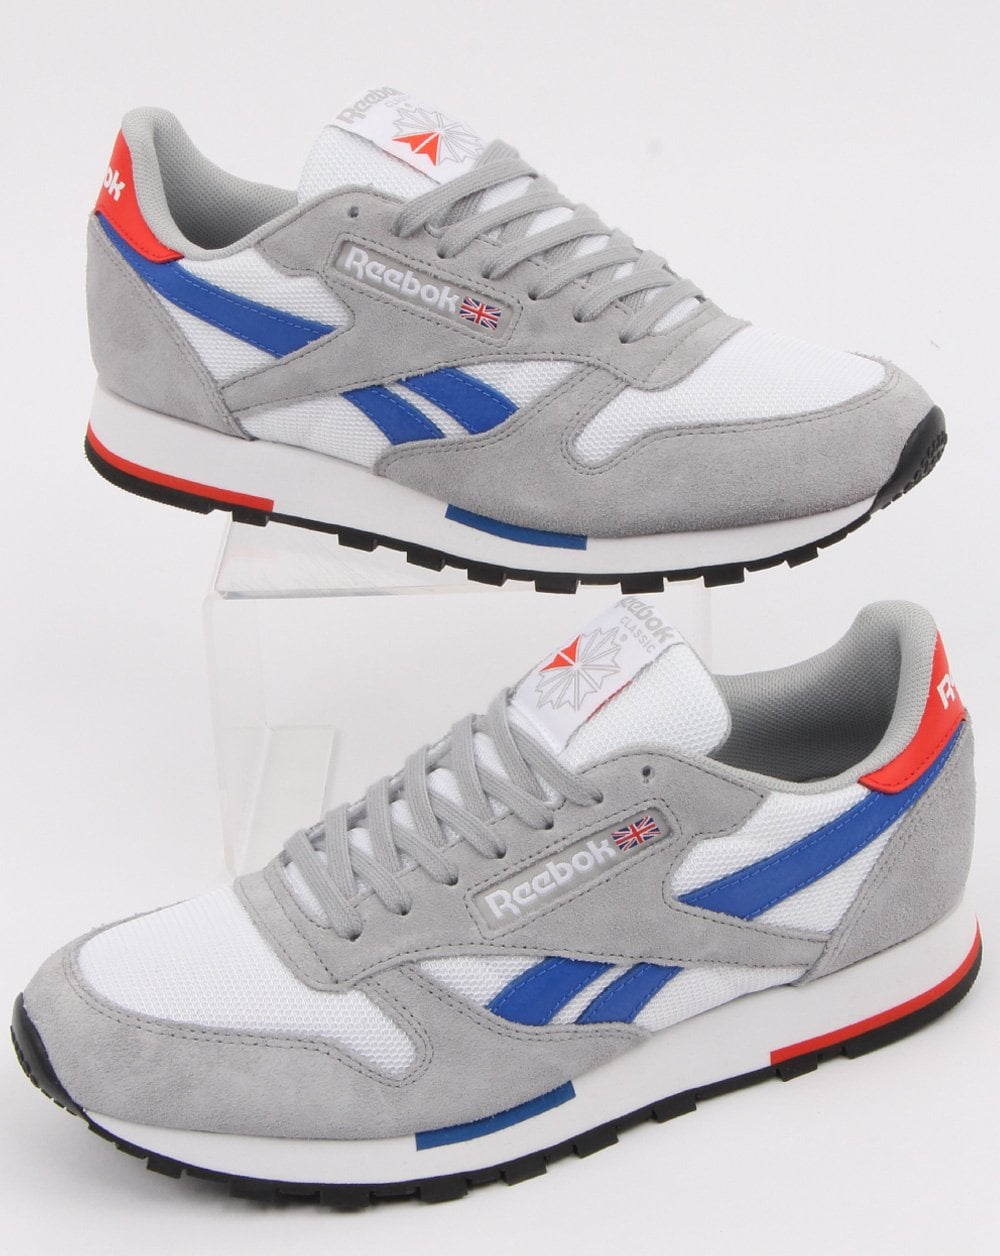 9c0ebe565a Reebok Classic Trainers White in Grey & Blue | 80s Casual Classics